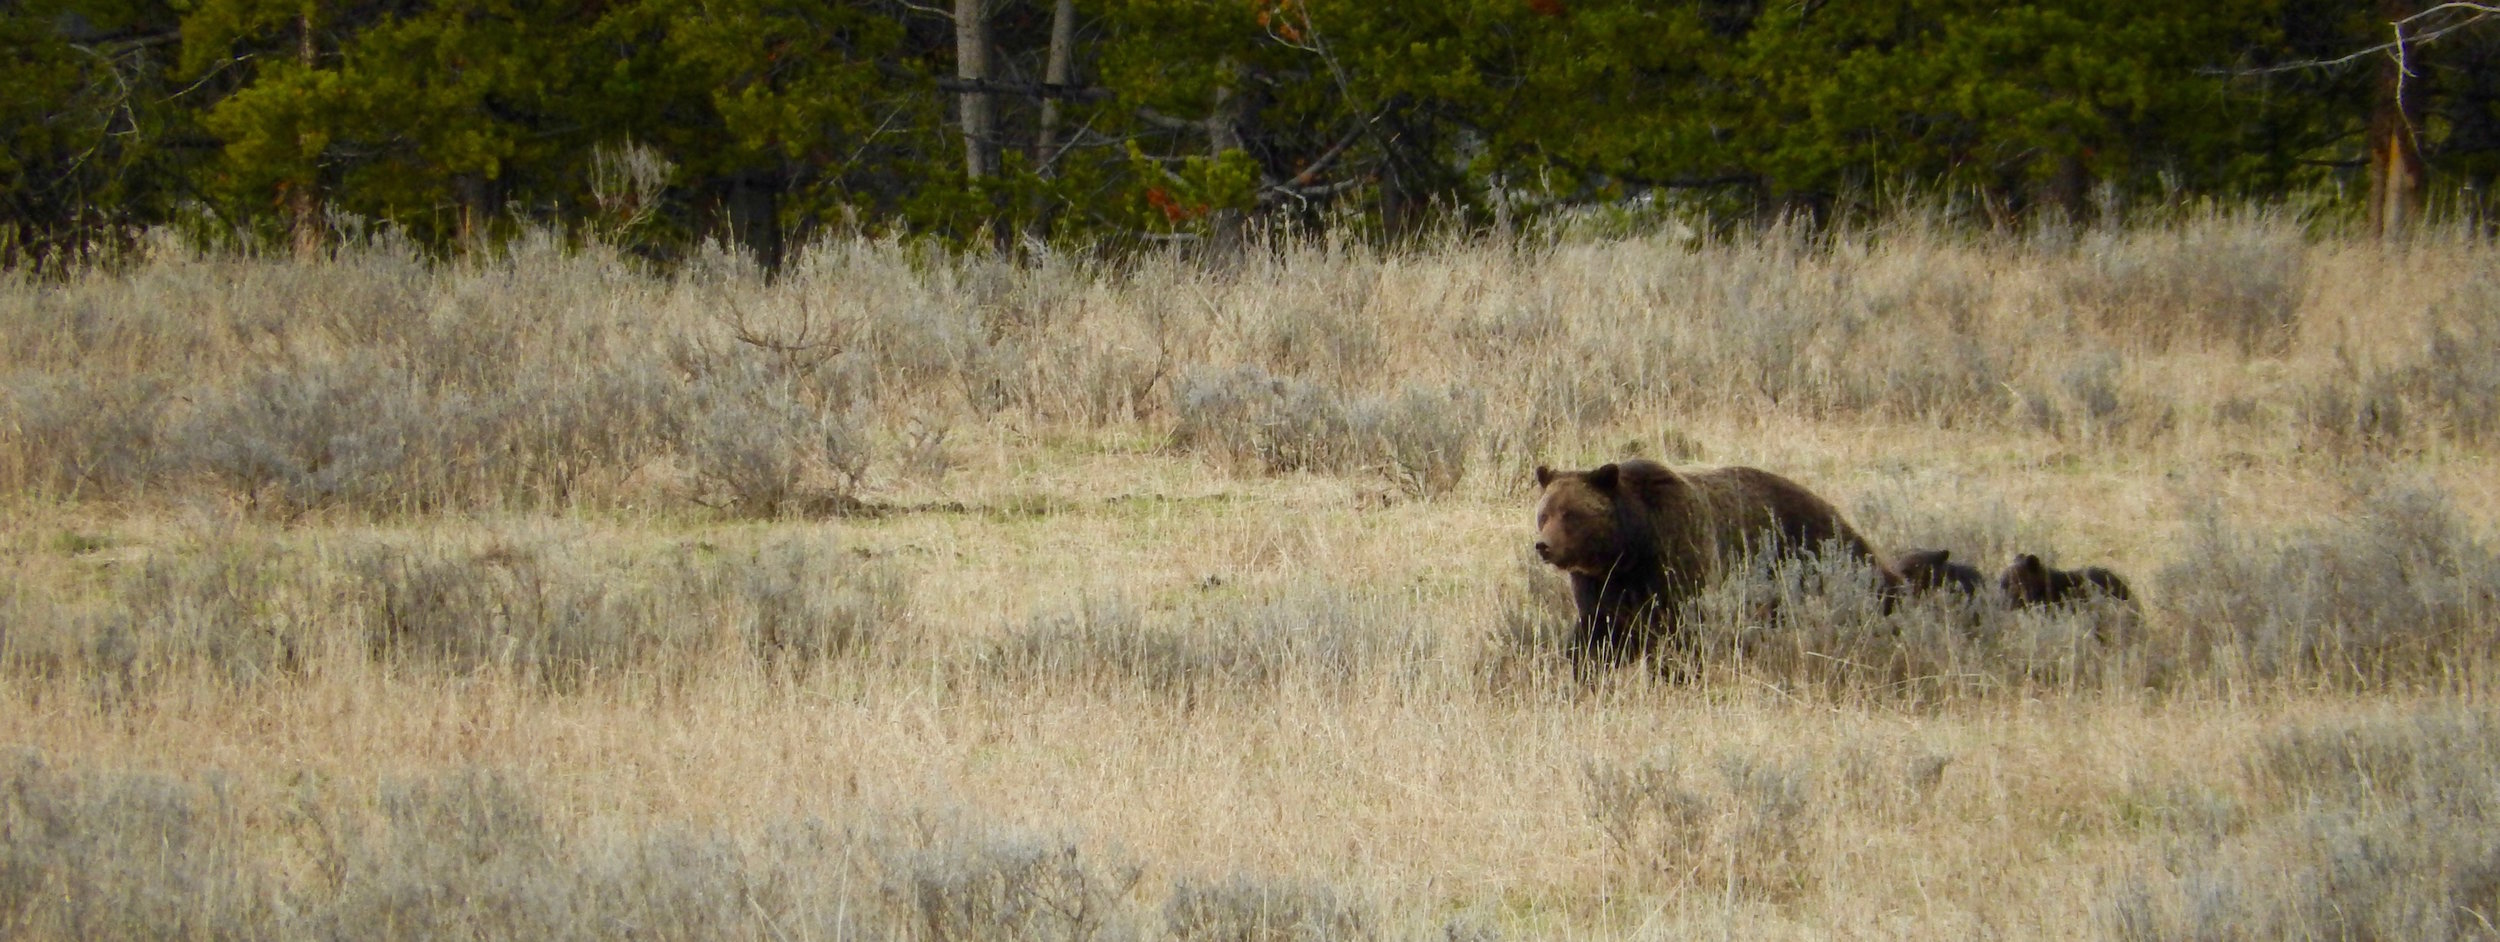 grizzly-bear-mother-cubs-yellowstone.jpg